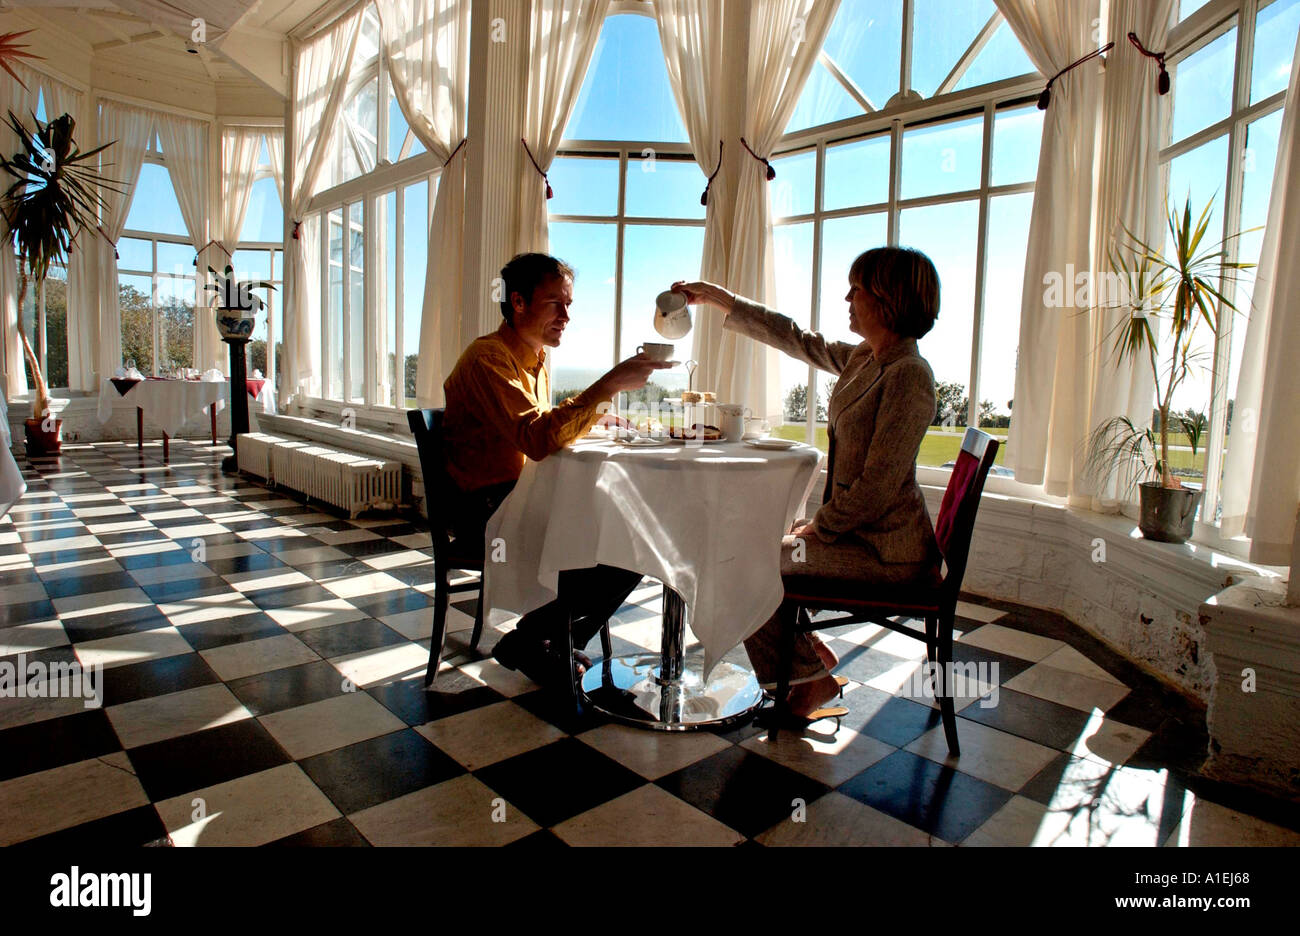 Traditional tea for two at a grand old seaside hotel - Stock Image